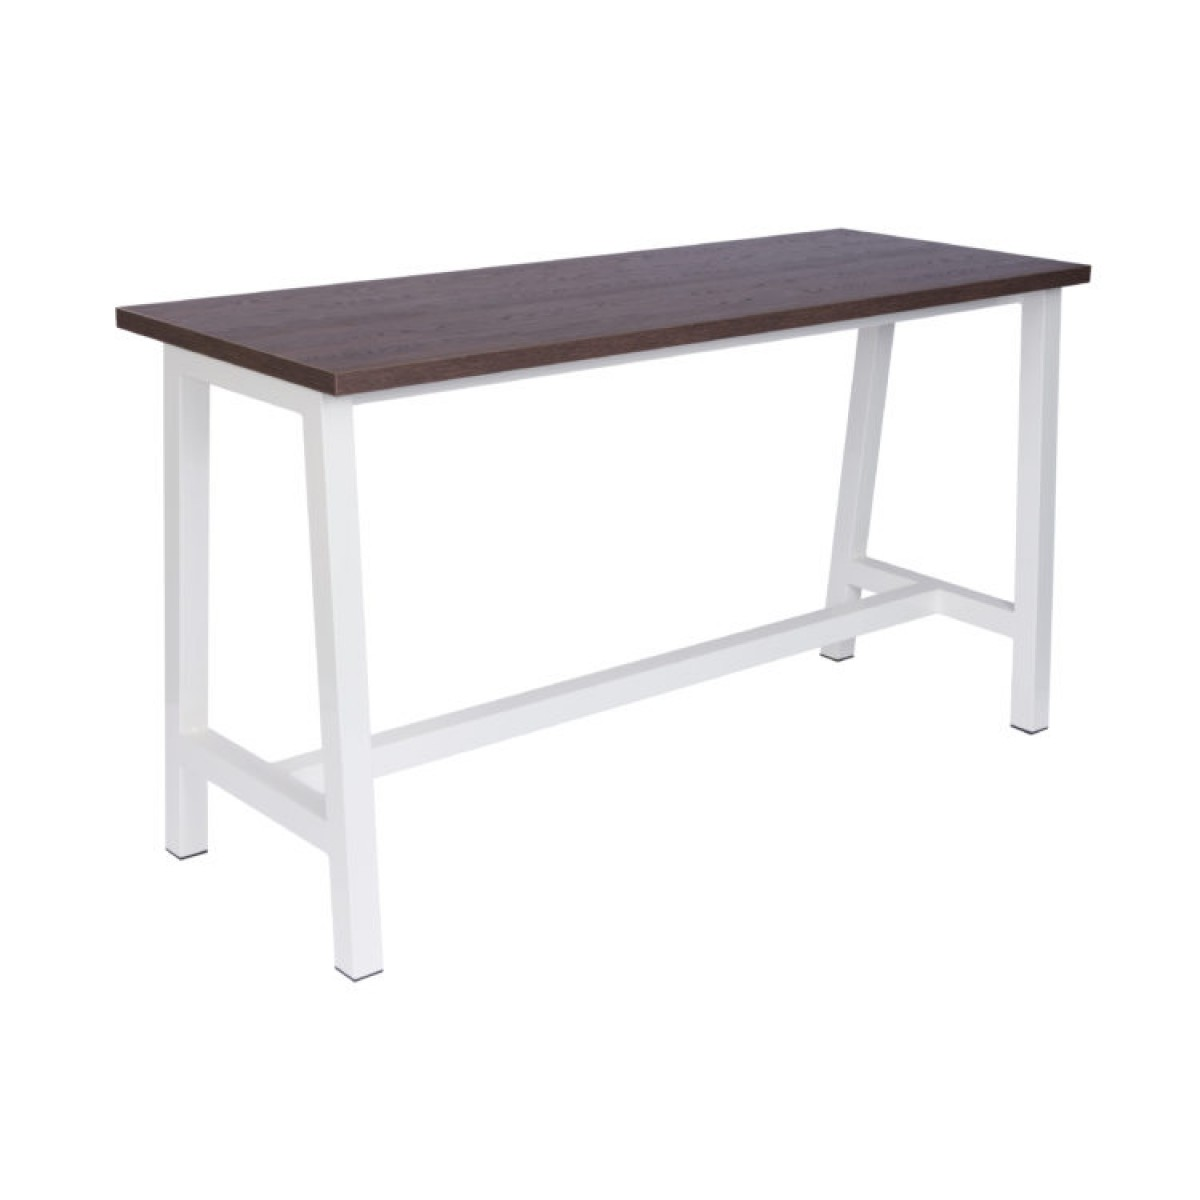 Strange Apex Heavy Duty Canteen High Poseur Bench Table Ocoug Best Dining Table And Chair Ideas Images Ocougorg